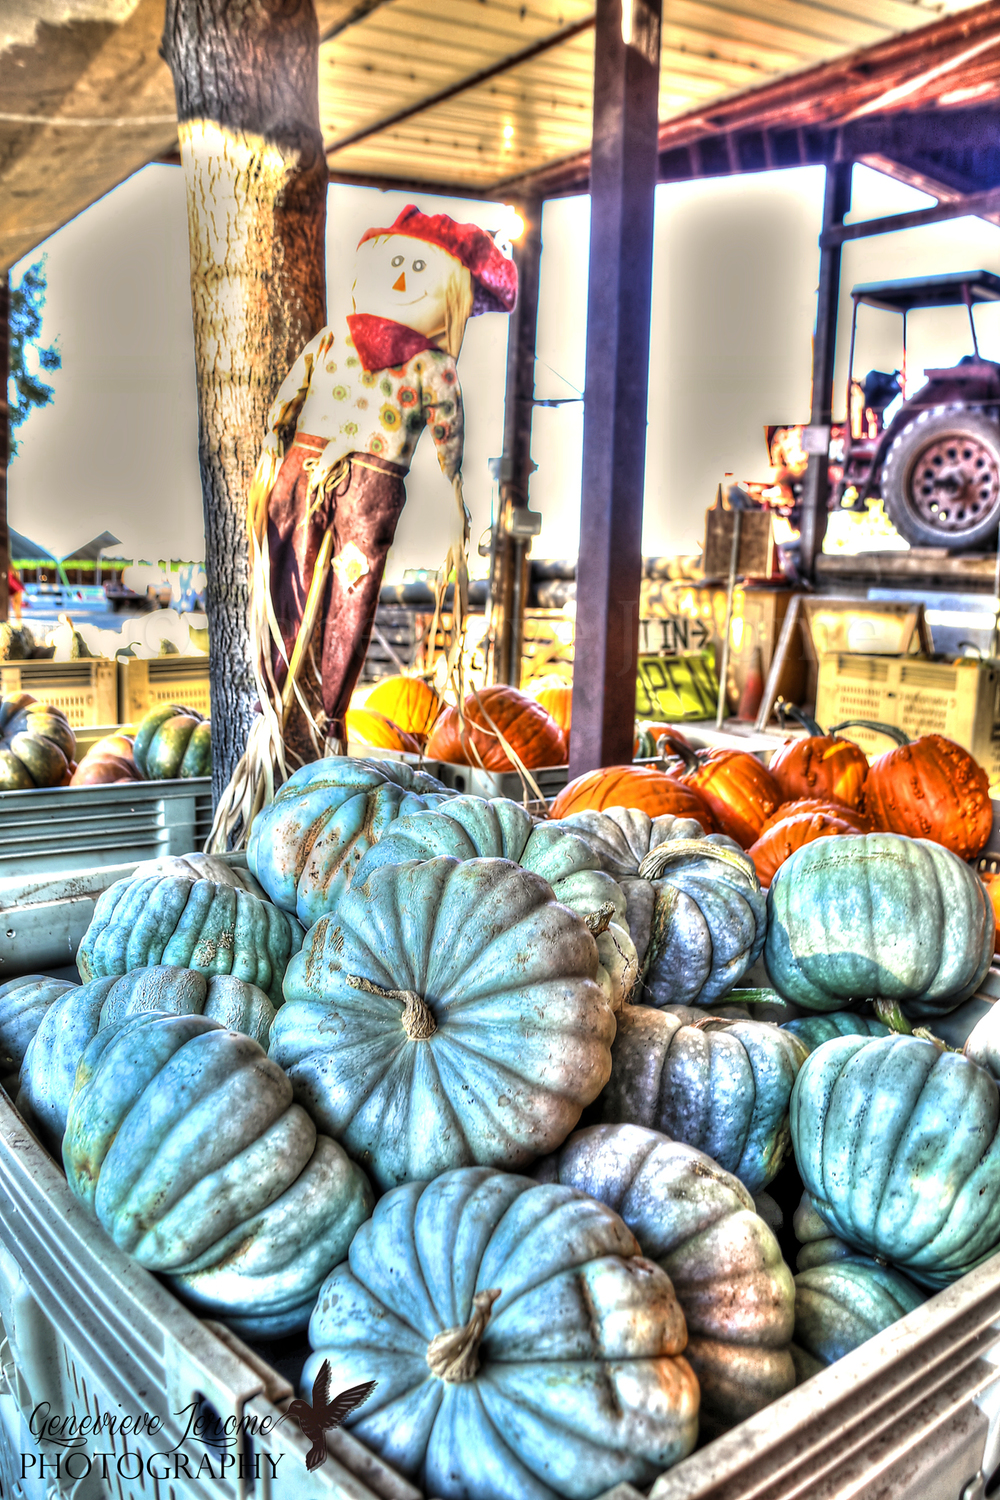 """Lady G's Photo of the Day:  """"Pumpkins""""  I shot this a couple of weeks ago at Davis Ranch in Sloughhouse, Calif. I know the owners. ;-) I'm obsessed with pumpkins, and well its almost October so I thought this would be a good photo to display today. Plus it sort of looks like a painting which I'm a huge fan of.    © Genevieve Jerome Photography 2013"""